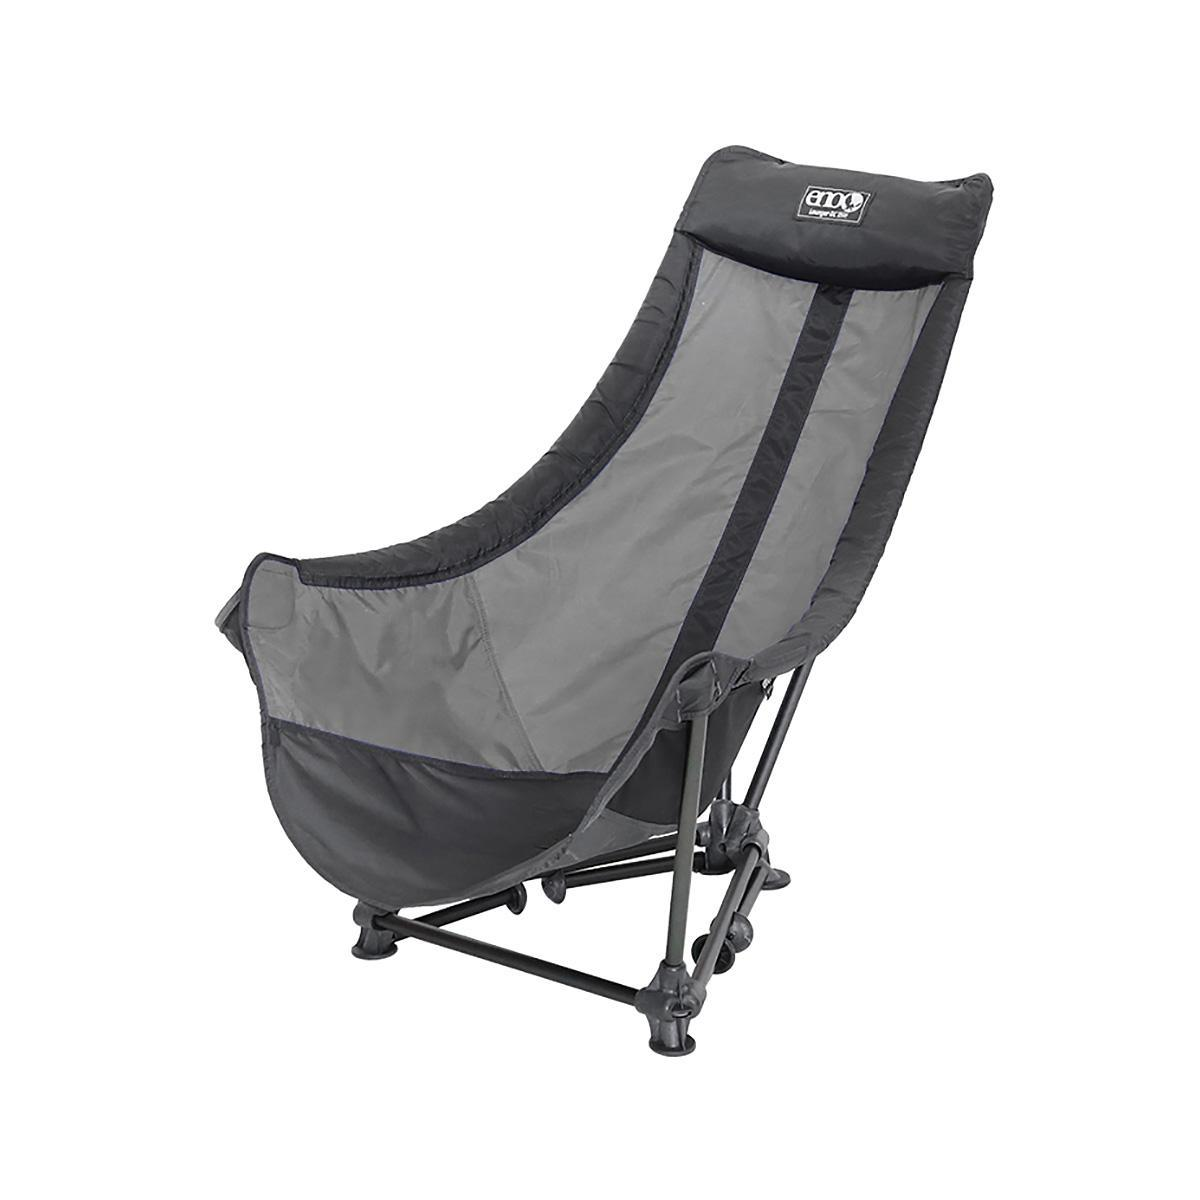 eno lounger chair cover direct birmingham dl mast general store